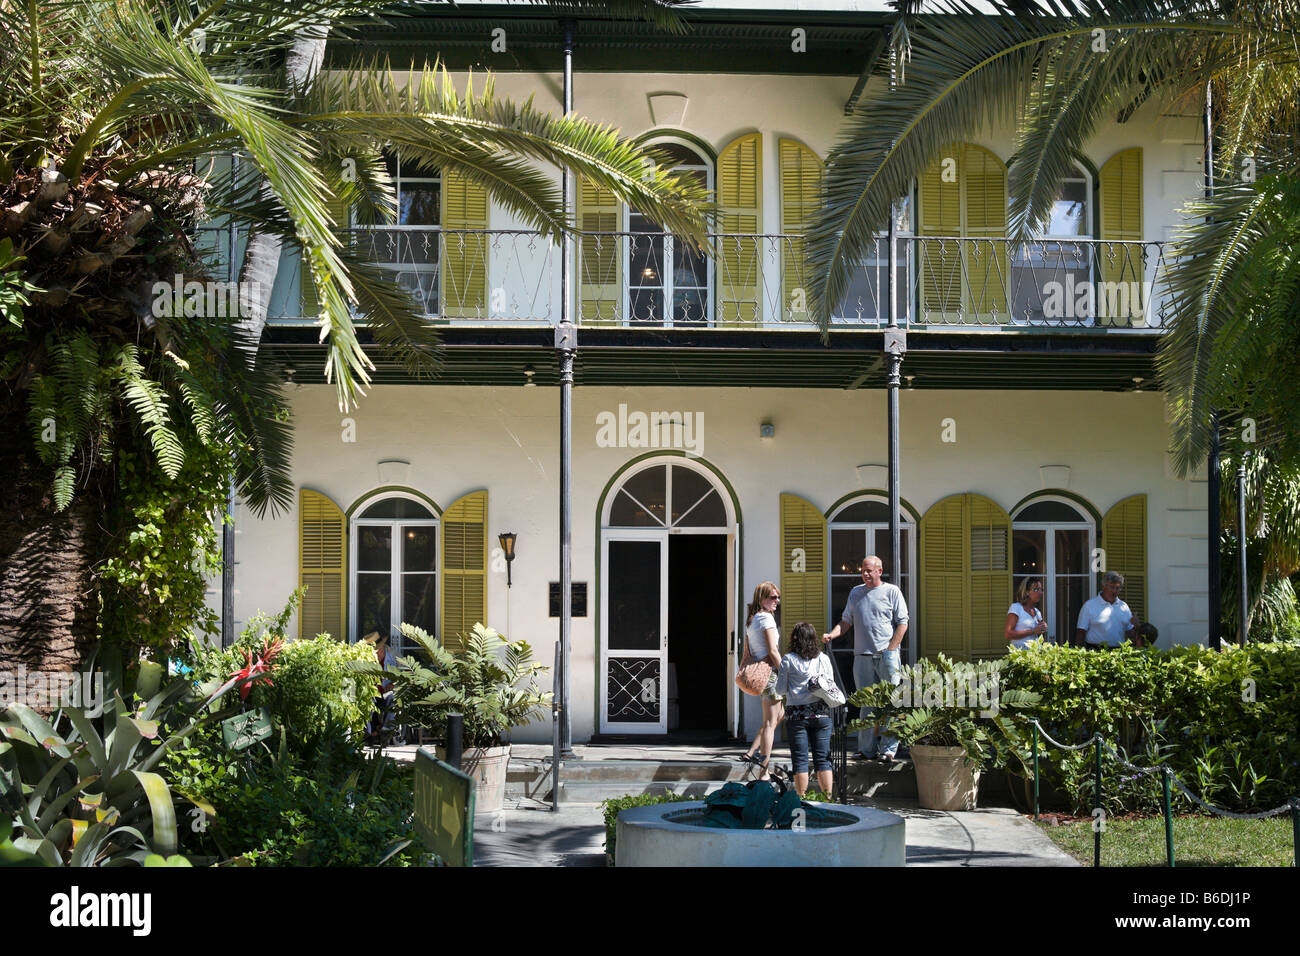 Ernest Hemingway Home and Museum, Whitehead Street, Key West, Florida Keys, USA Stock Photo